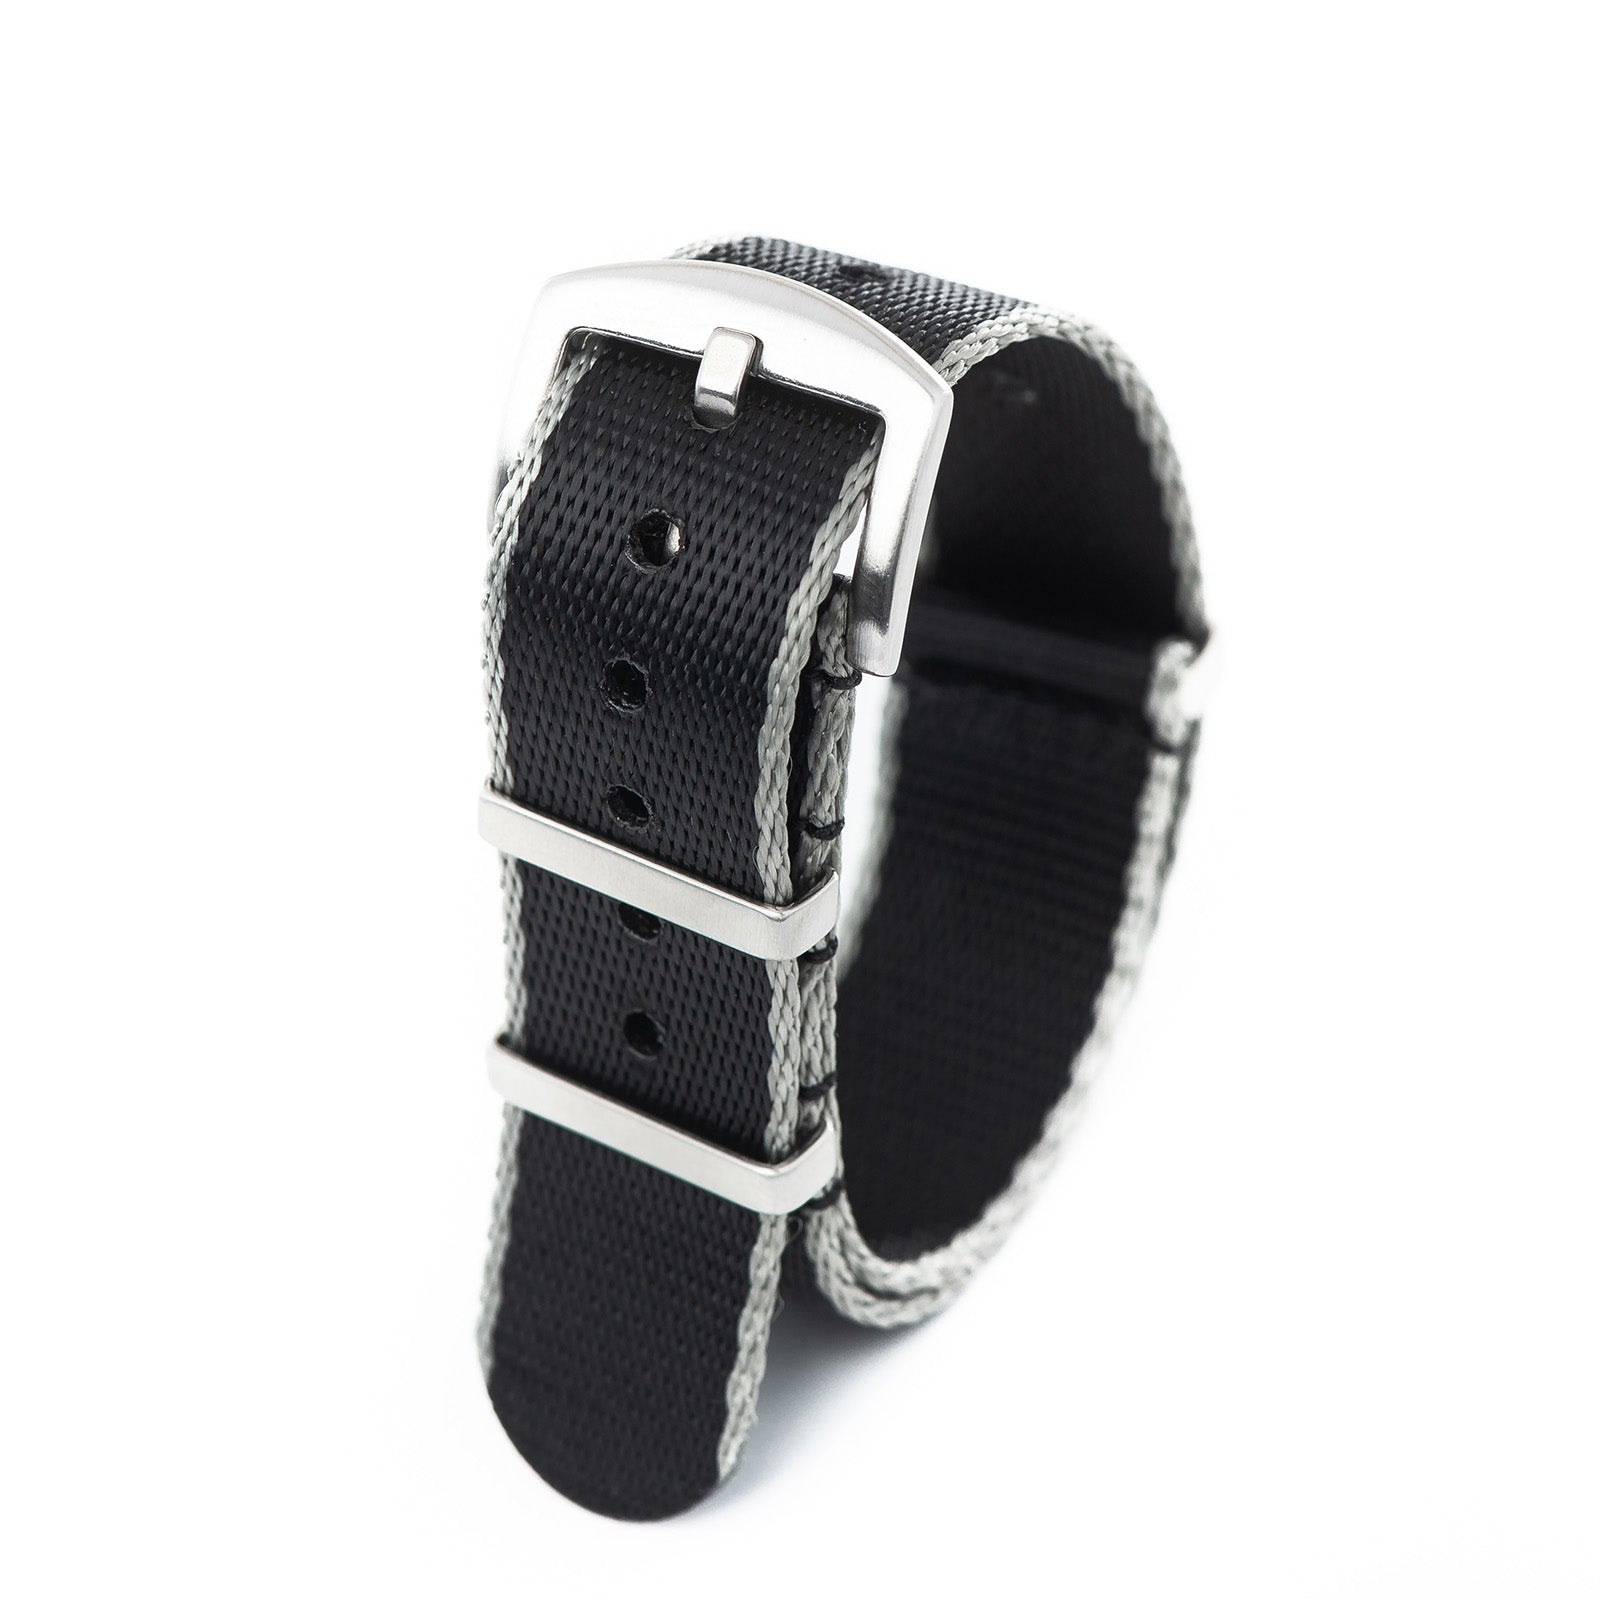 20mm 22mm Premium Seat Belt Nylon NATO Watch Strap - Black Grey